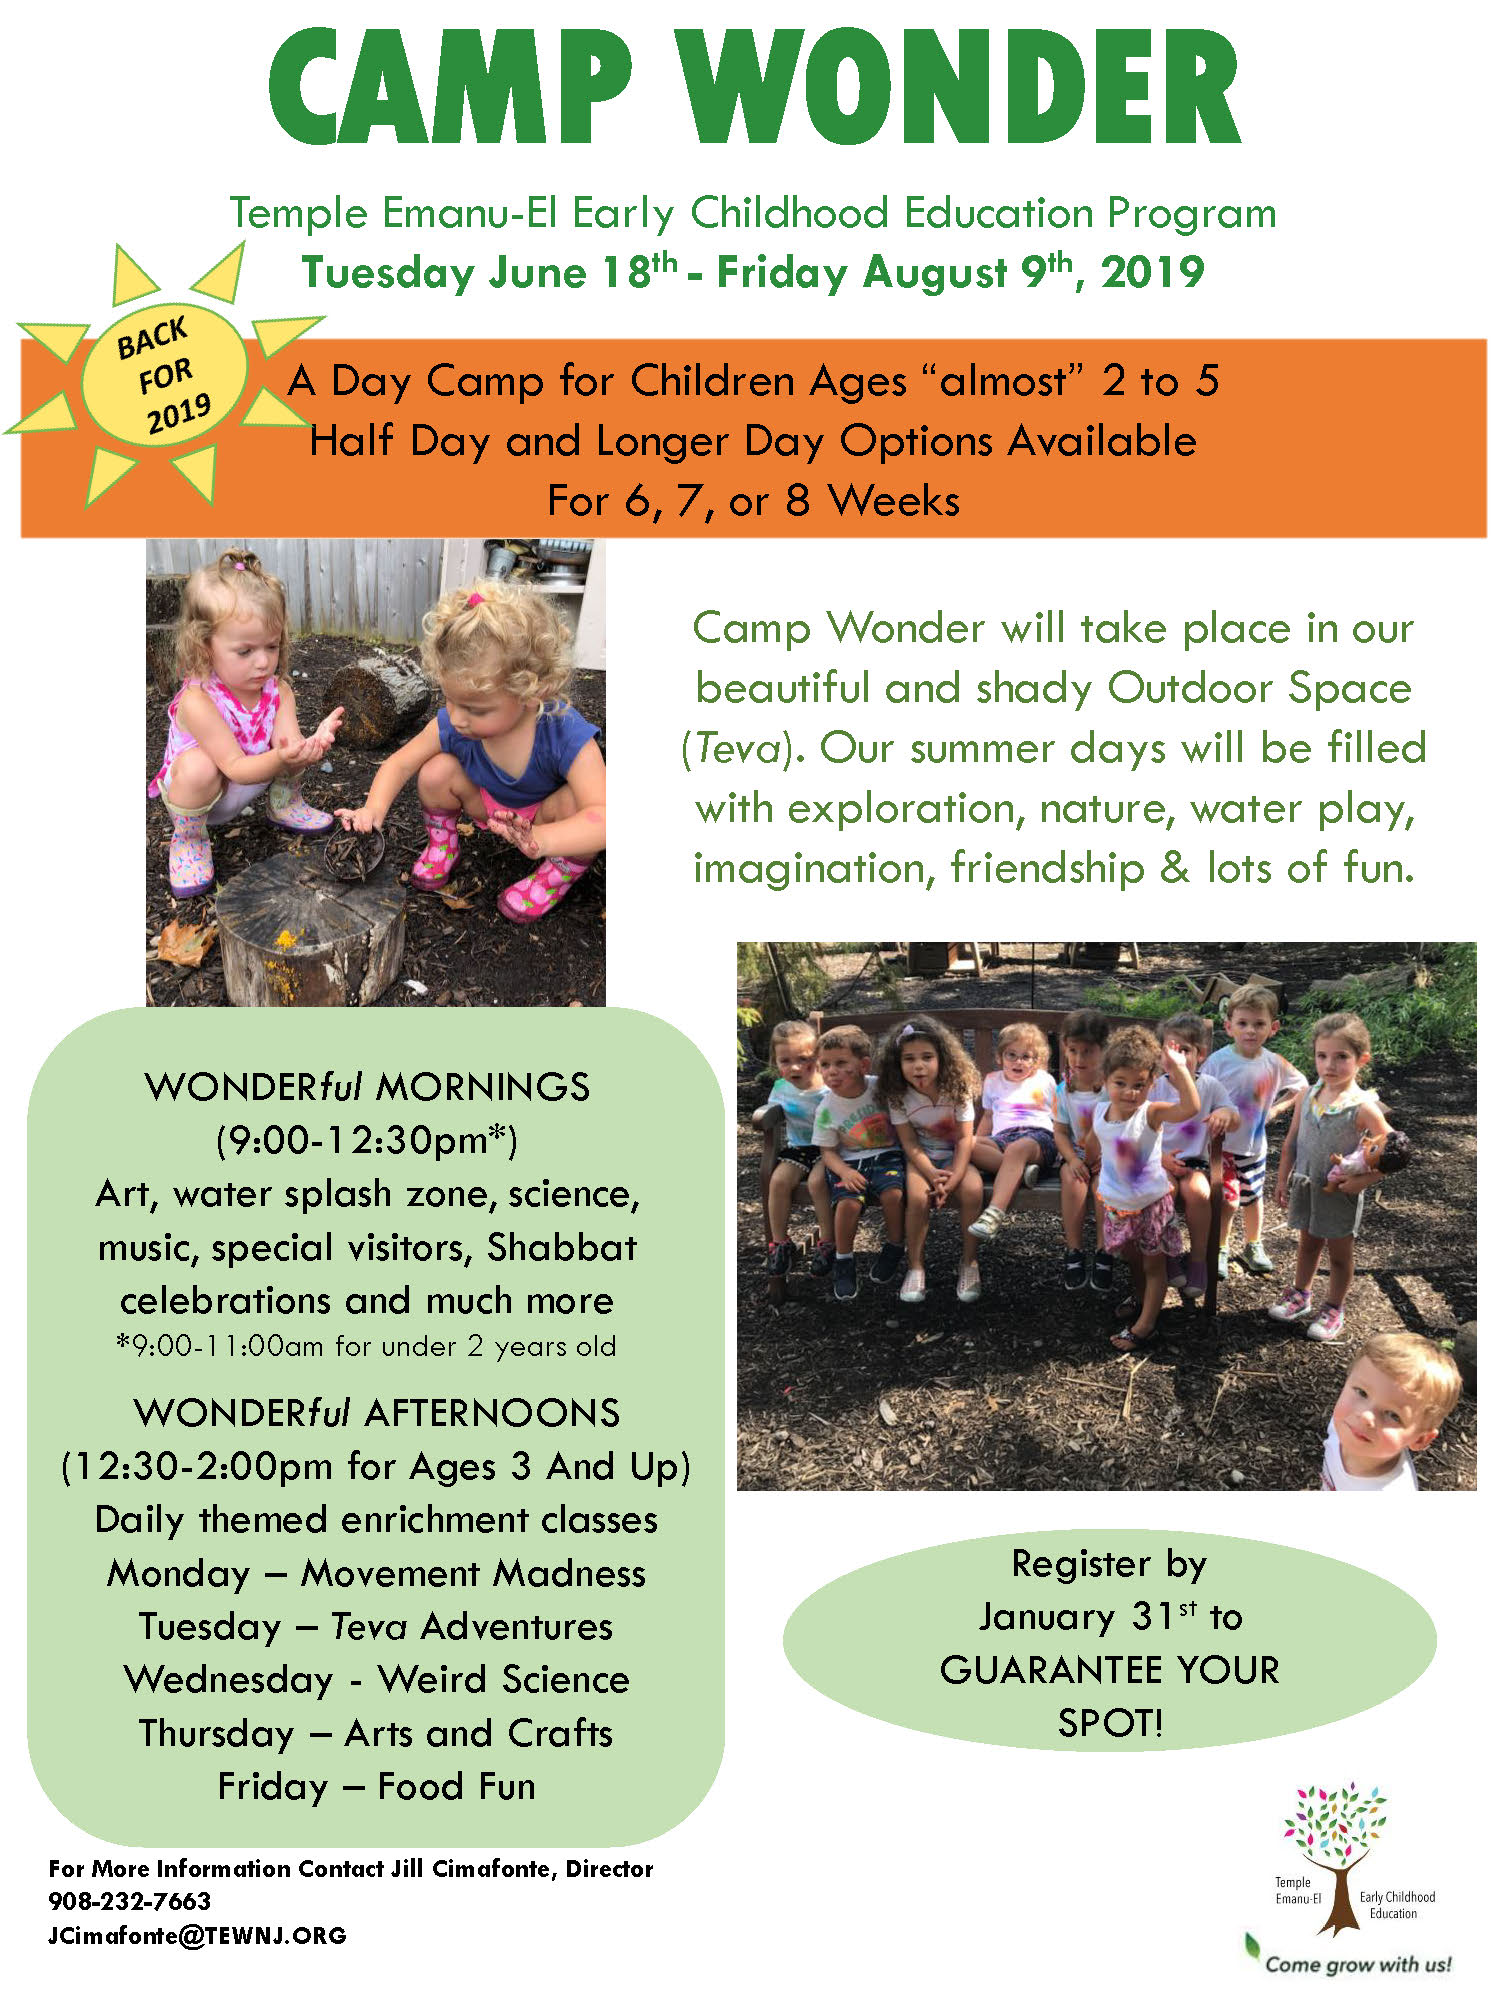 CAMPWonder2019flyer1126 page 1